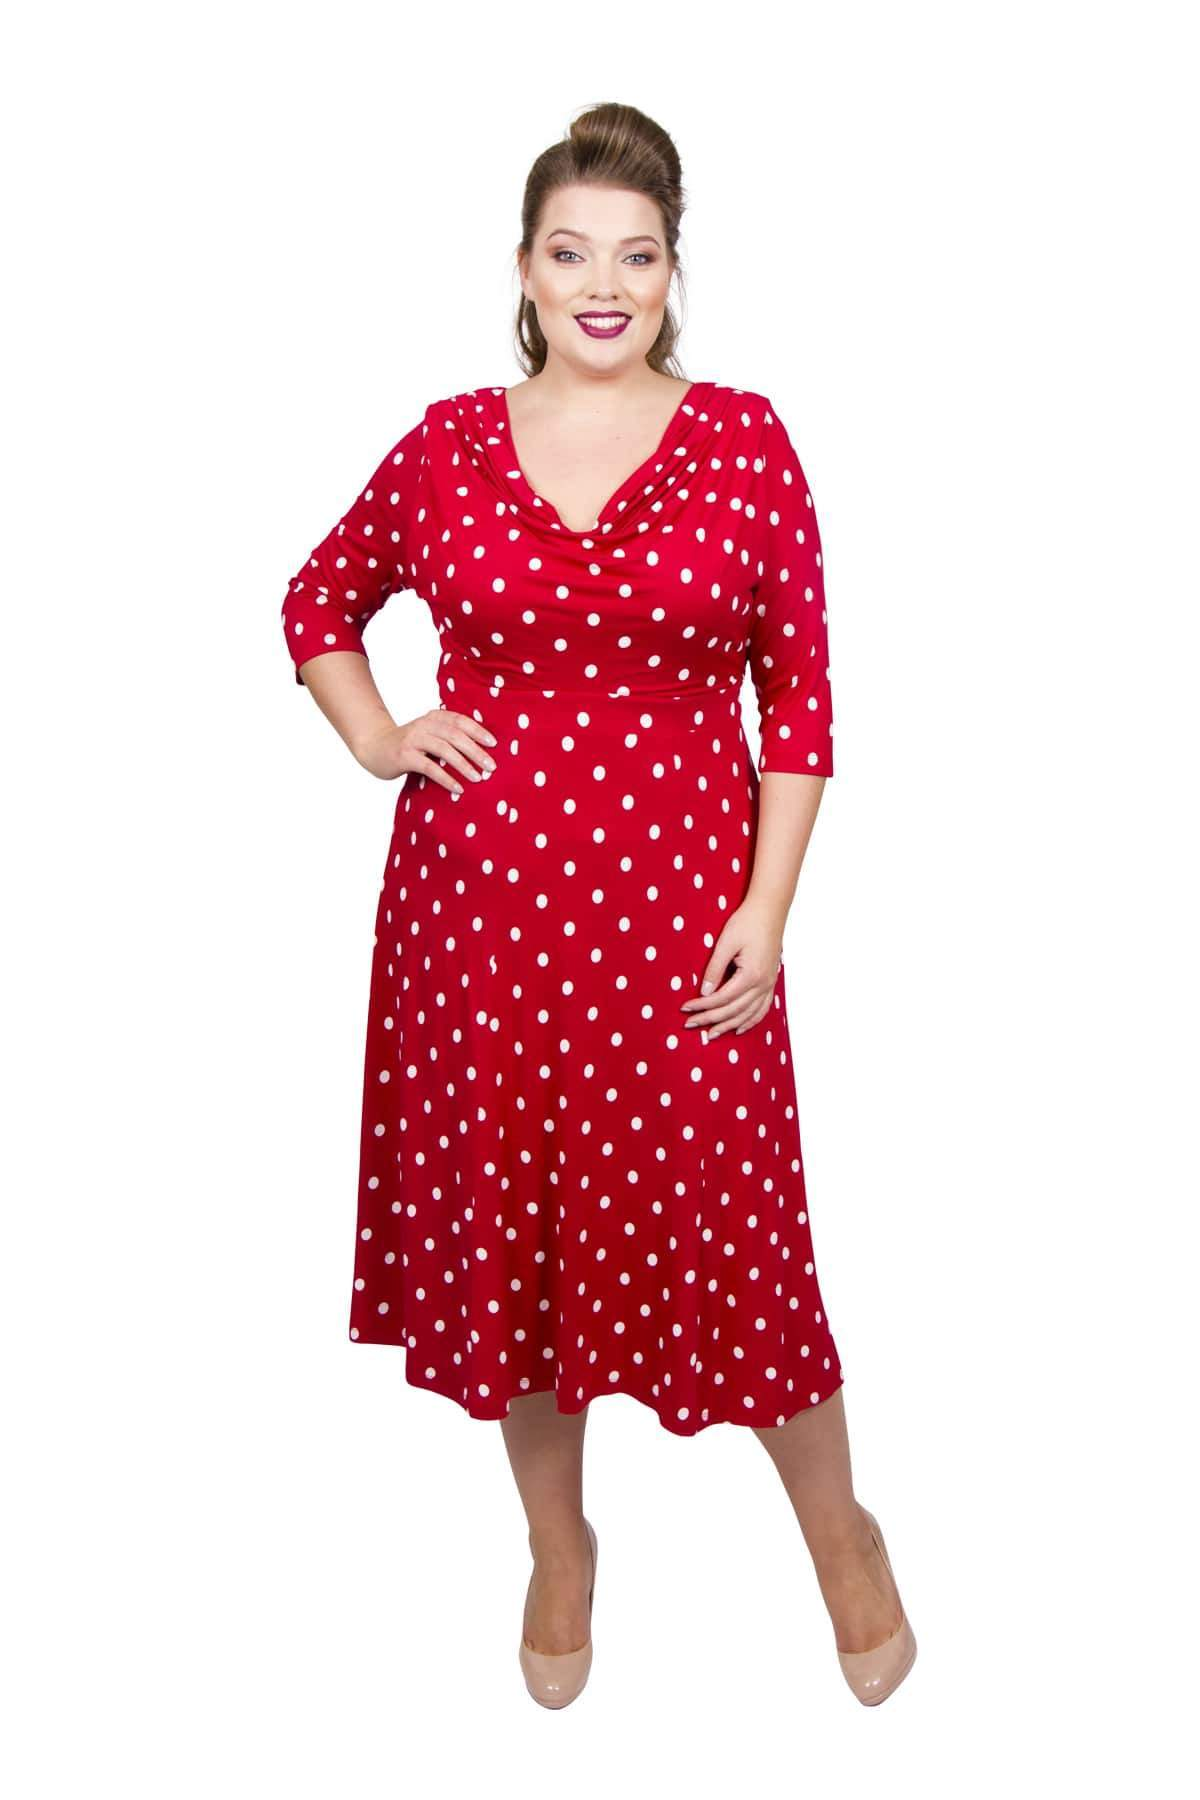 1940s Fashion Advice for Short Women Lollidot Cowl Neck 40s Dress - SCARLETWHI  12 £60.00 AT vintagedancer.com